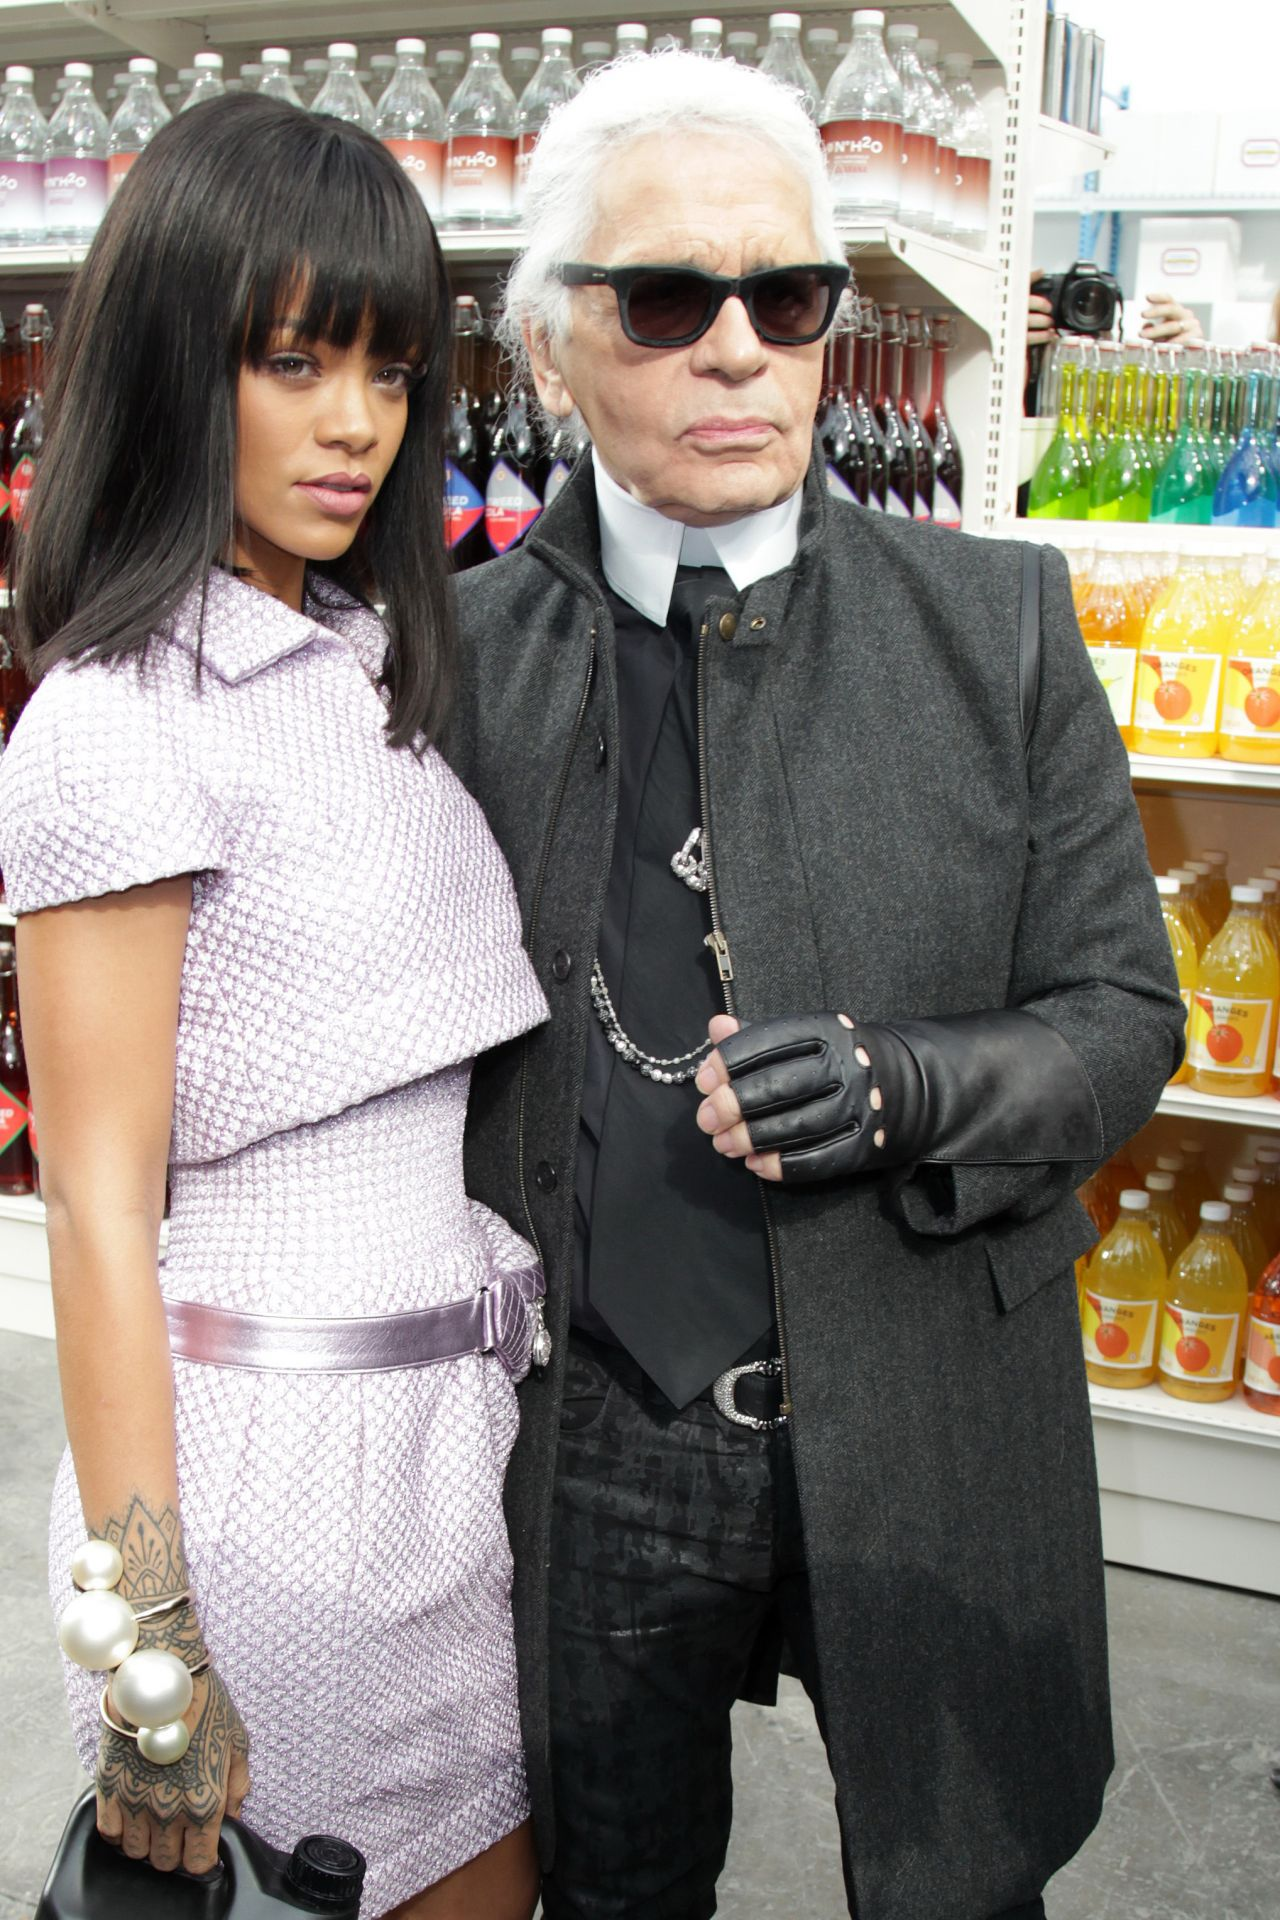 rihanna-and-karl-lagerfeld-in-paris-chanel-f-w-fashion-show-march-2014_1